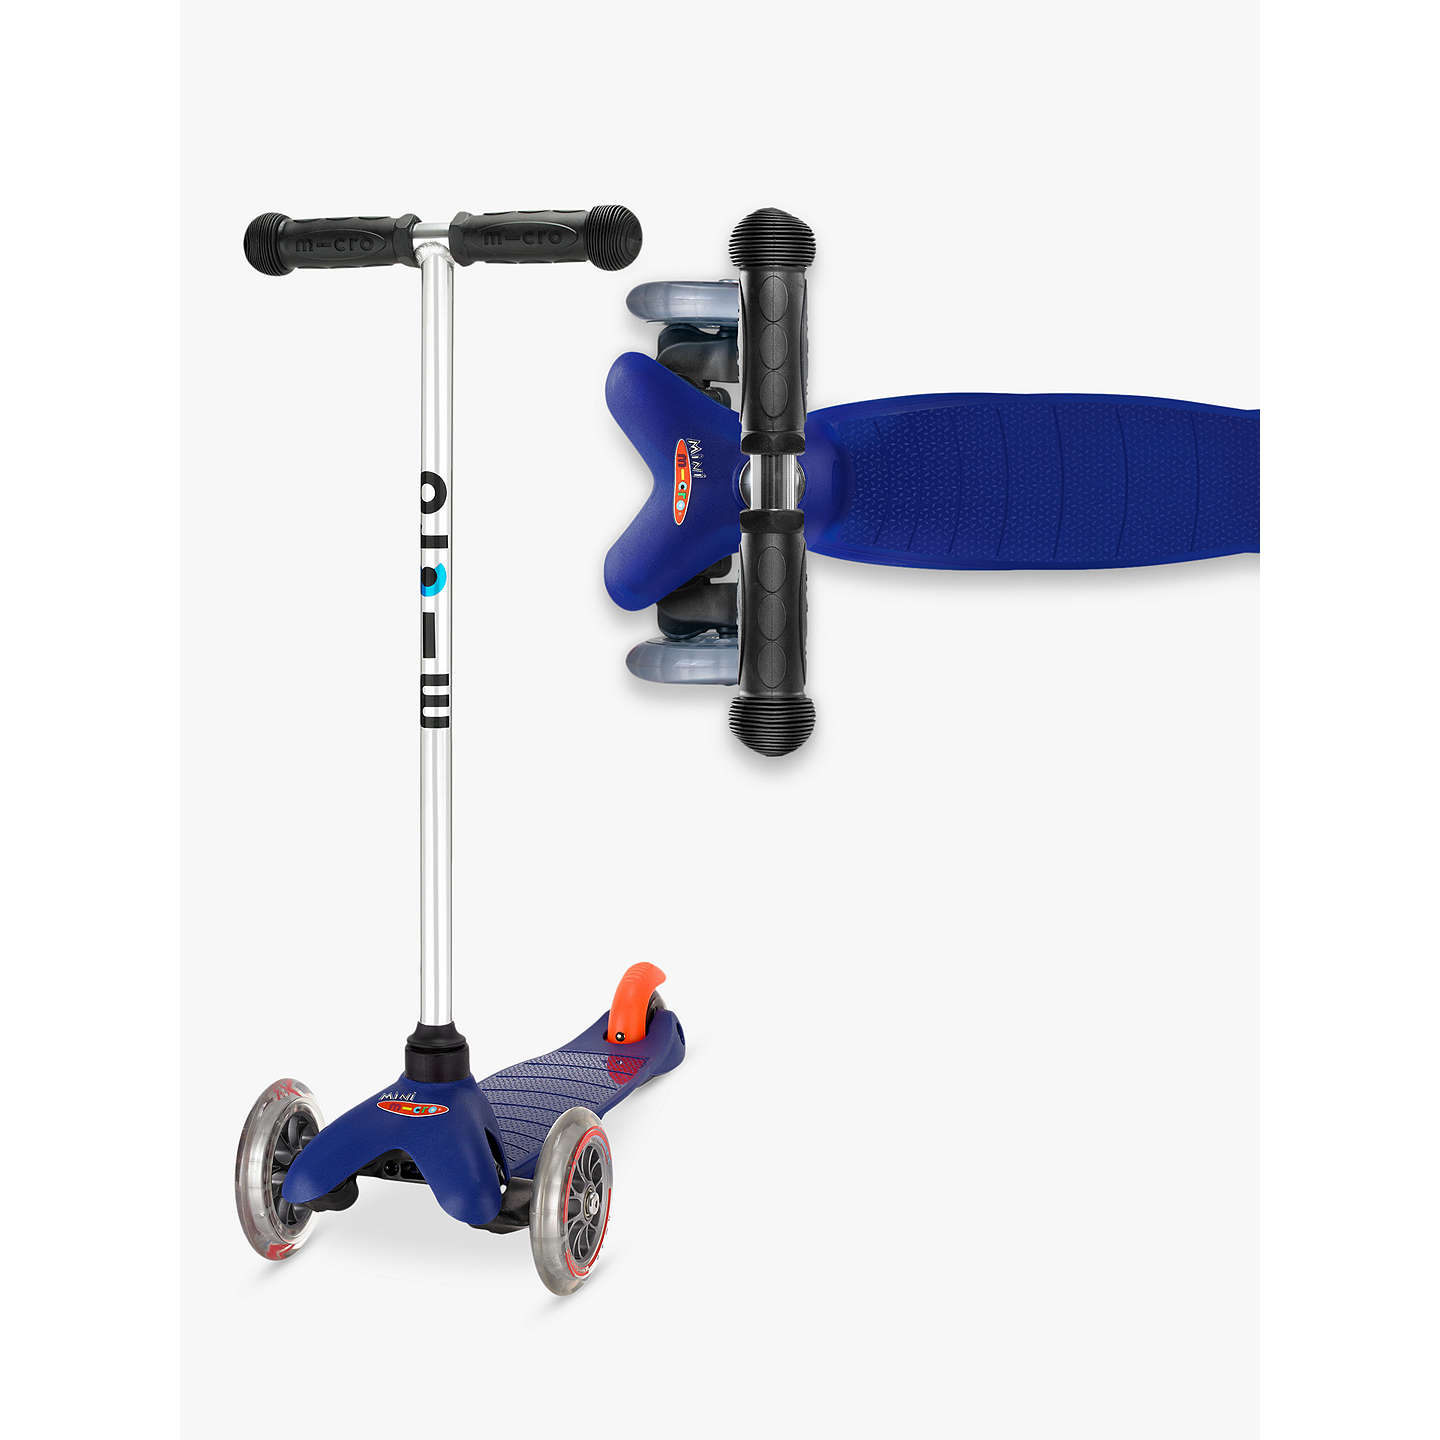 BuyMini Micro Scooter, 3-5 years, Blue Online at johnlewis.com